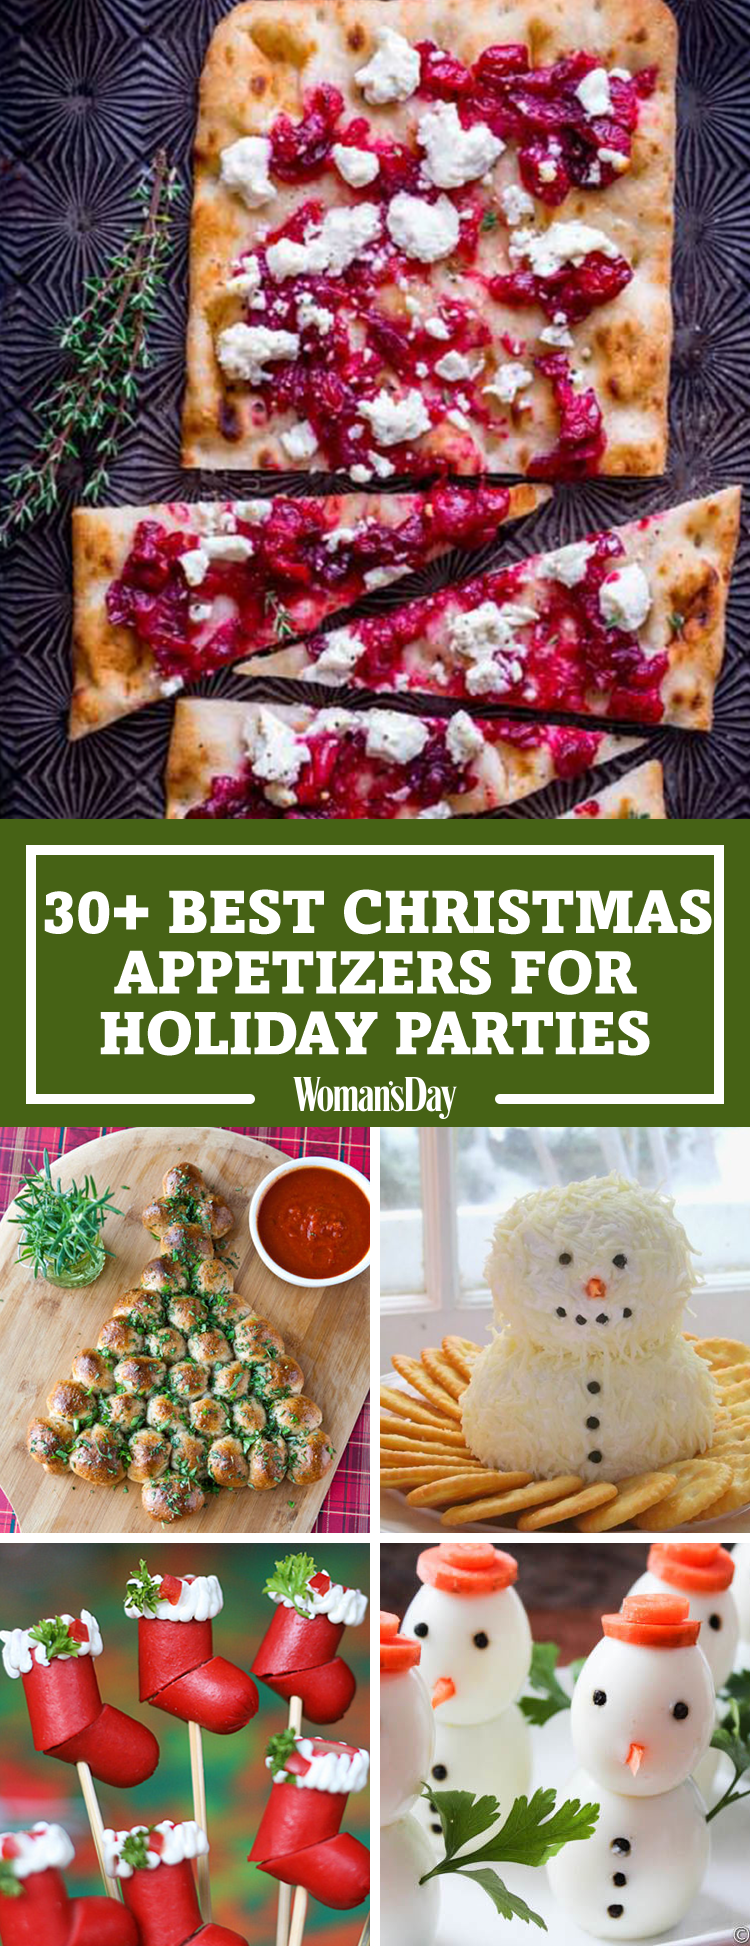 38 easy christmas party appetizers best recipes for holiday appetizers - Best Christmas Appetizers